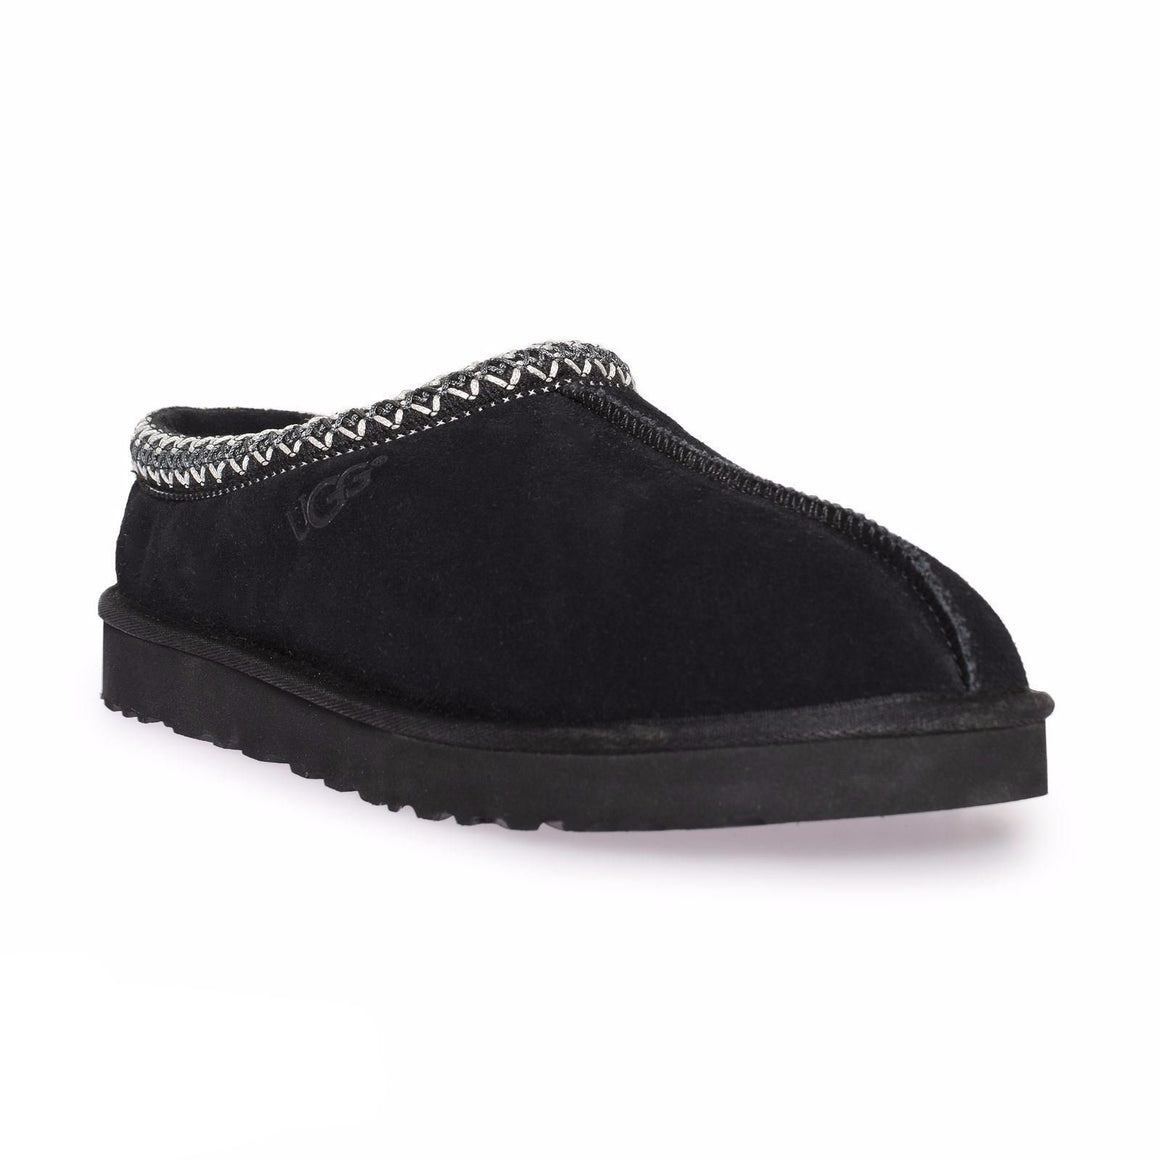 UGG Tasman Black Slippers - Men's